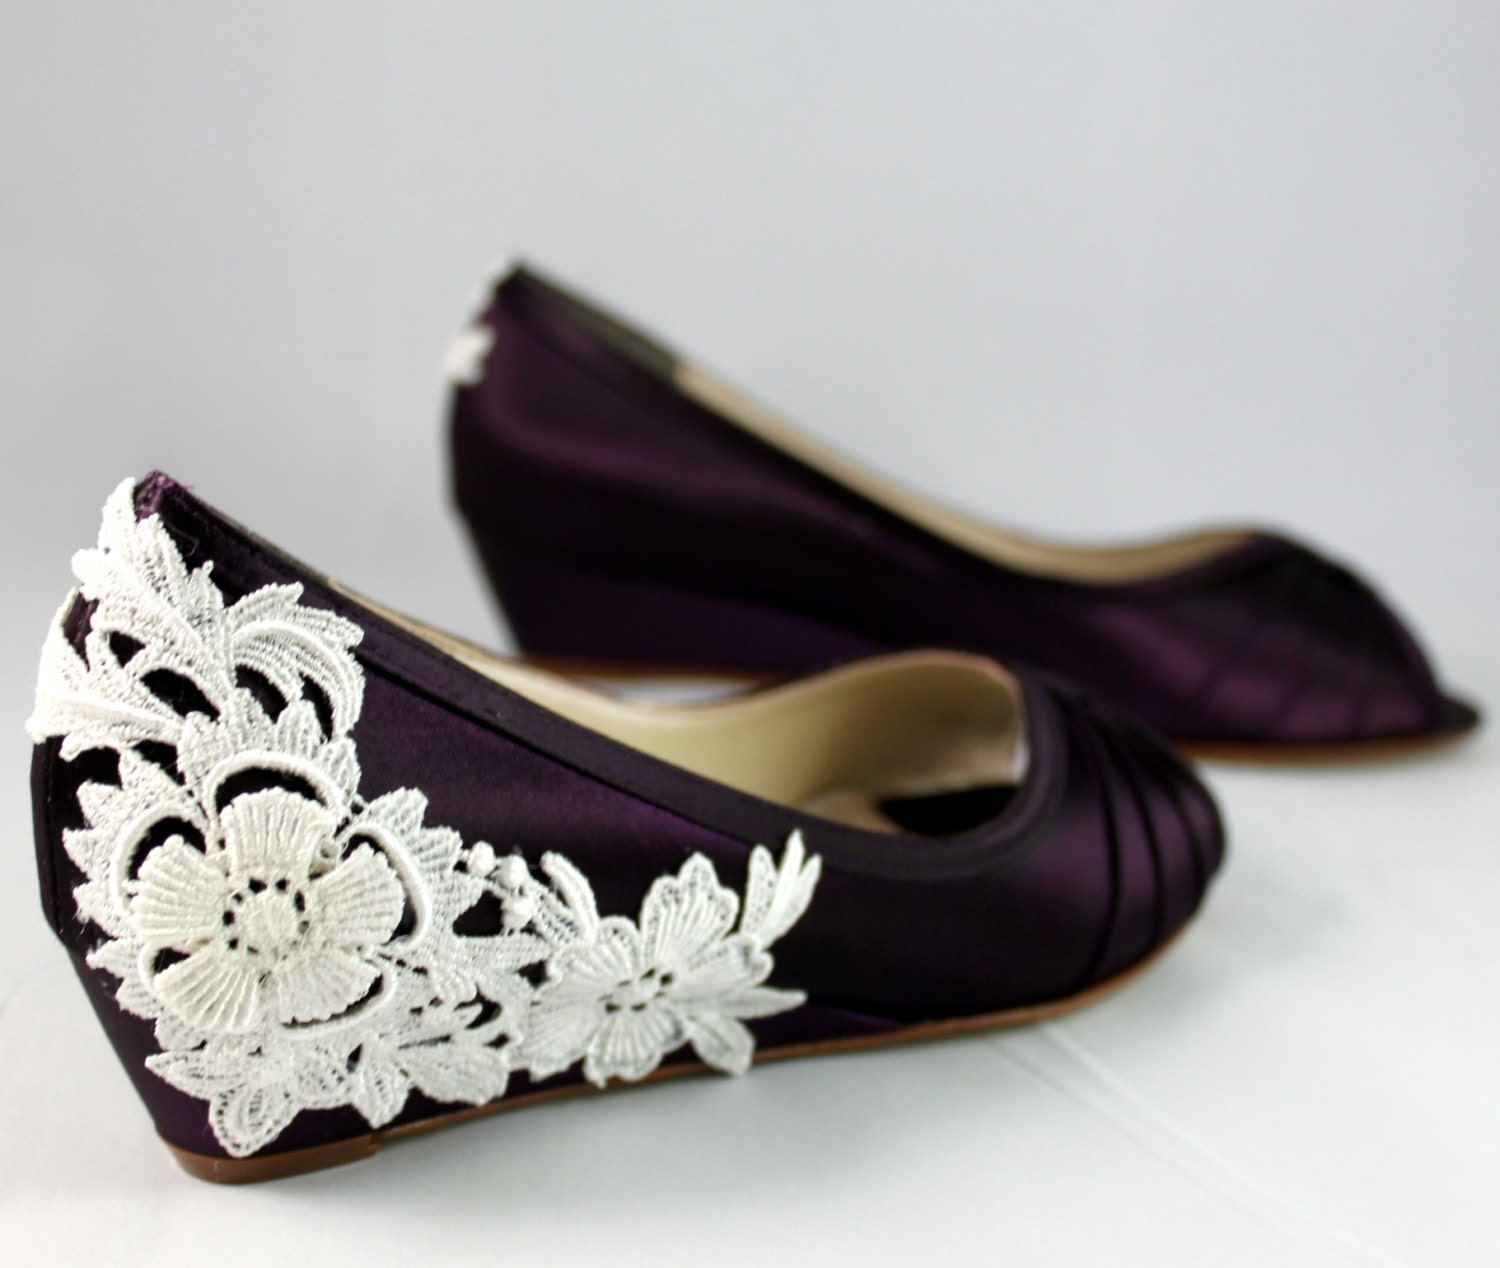 Nice Purple Wedding Shoes Wedge Low Heel    1 Inch Wedge Shoes Ivory Lace Heel   Size 6.5